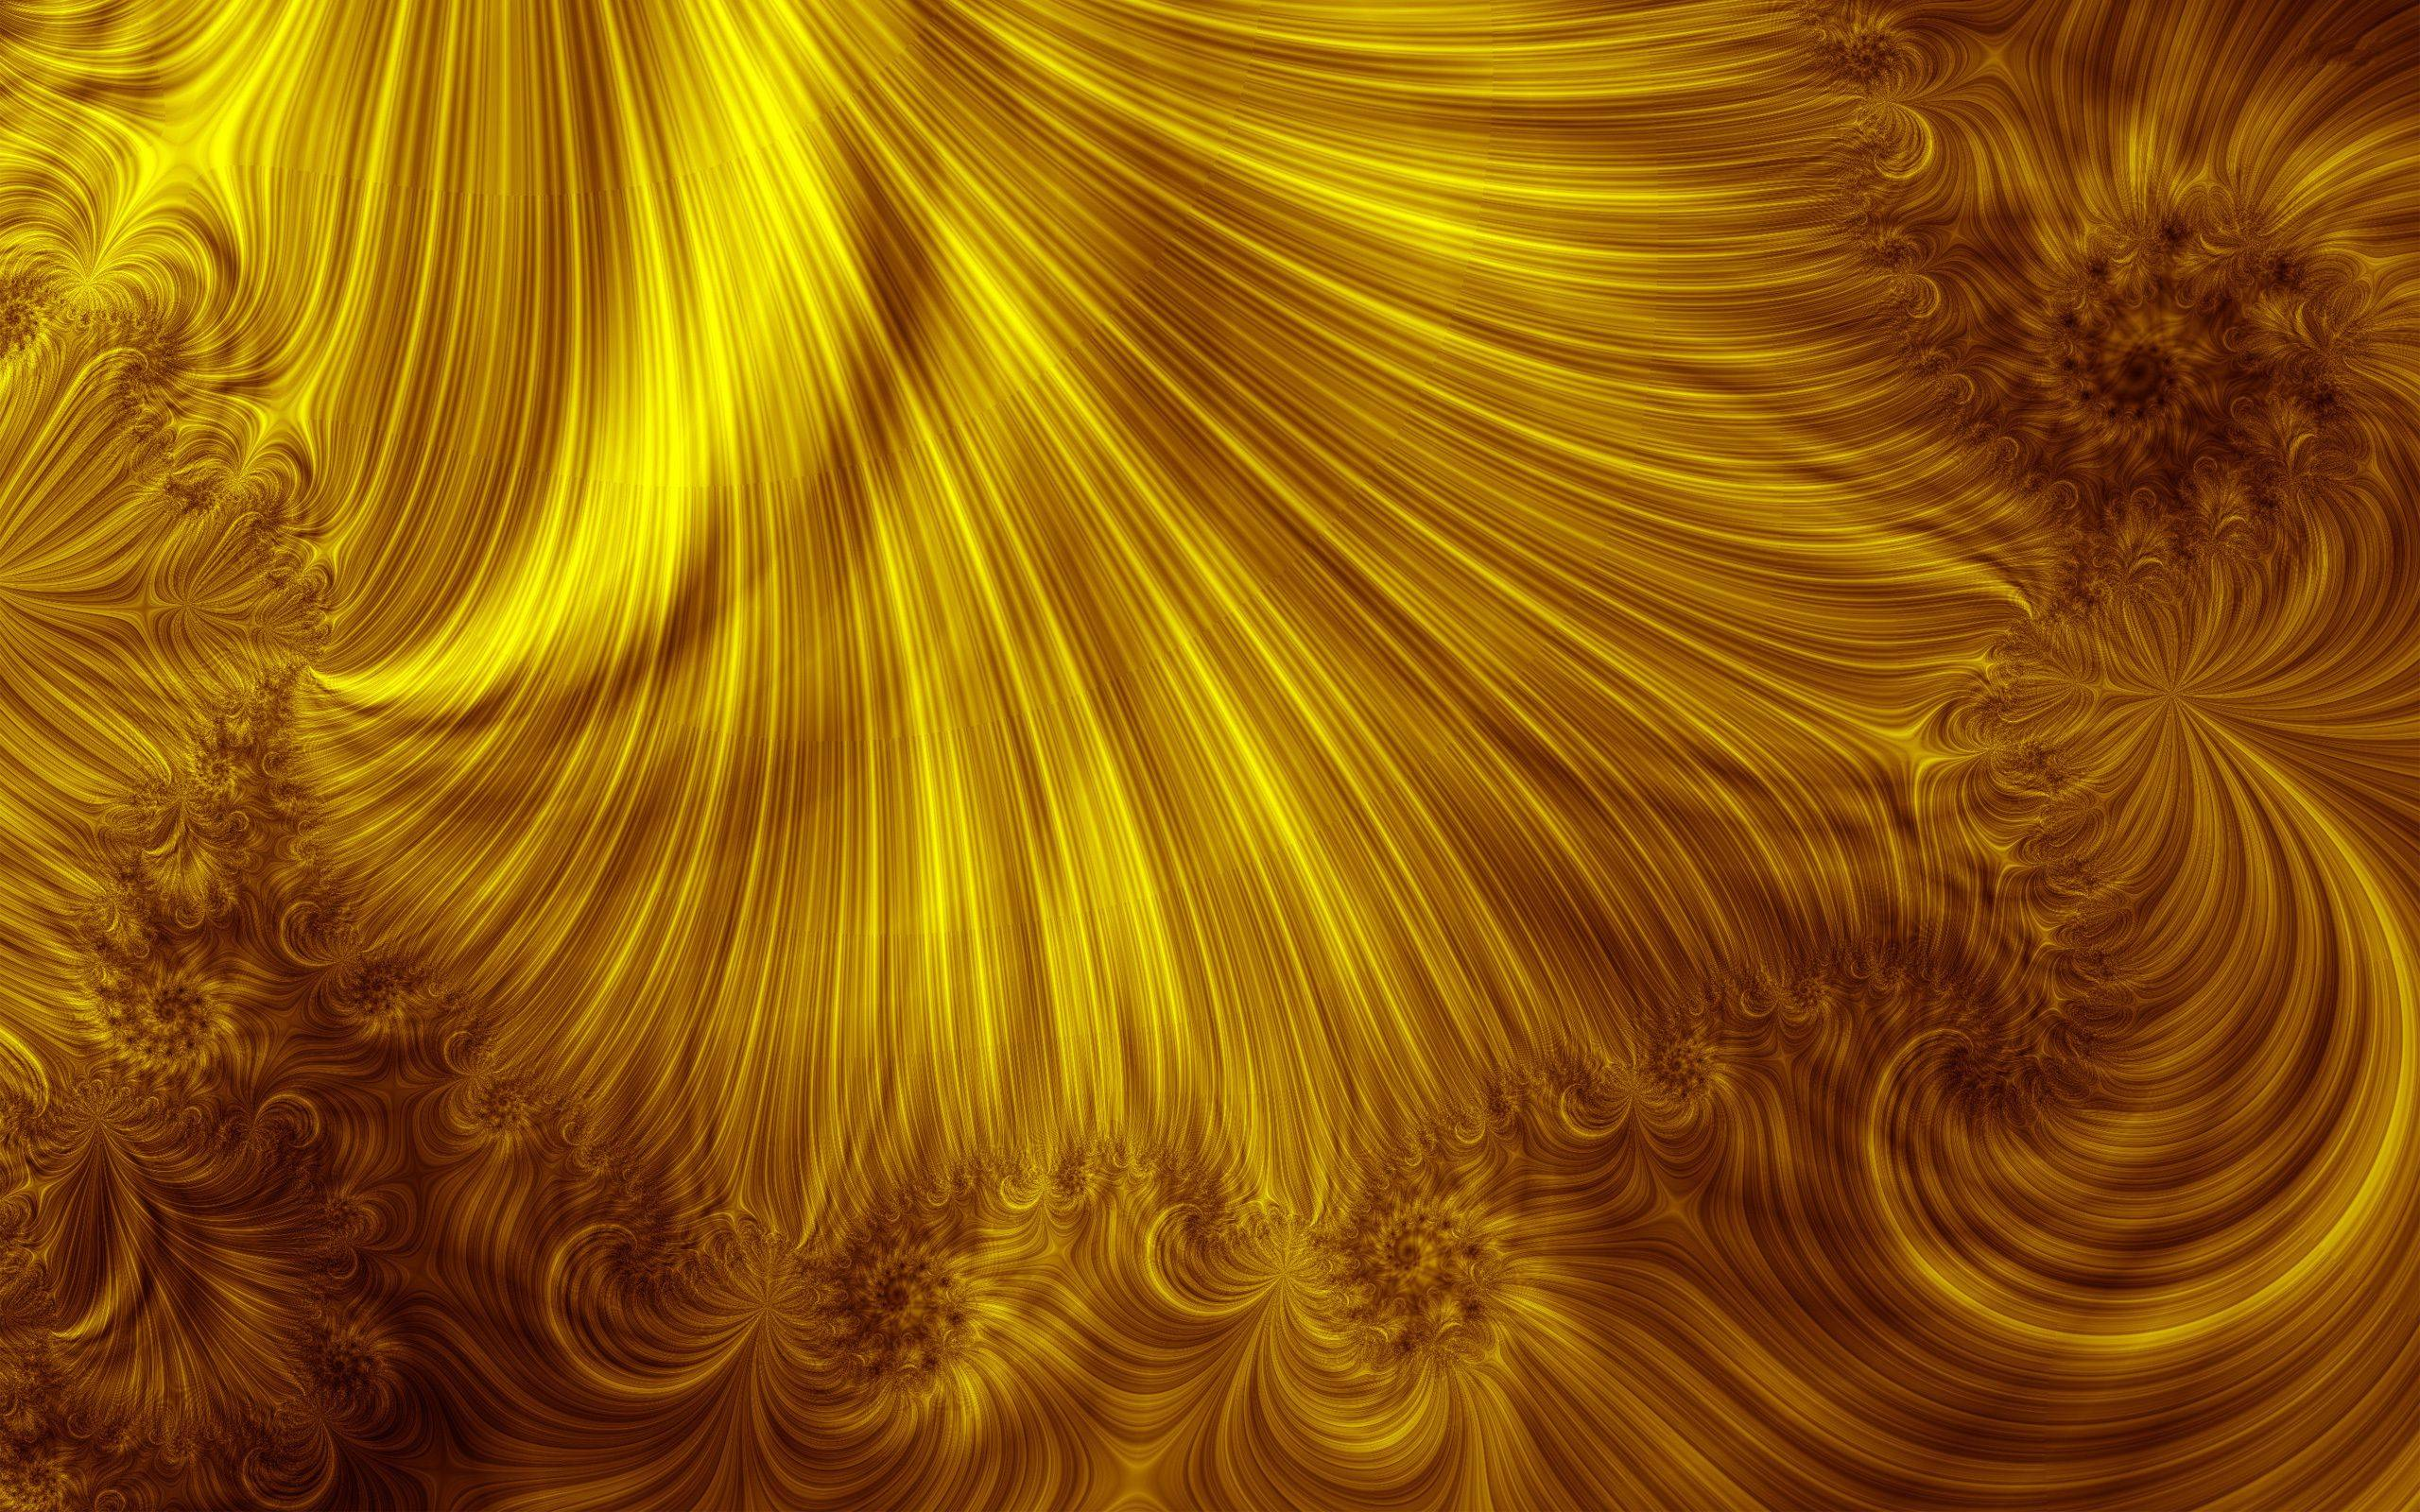 Golden Design Wallpaper : Gold backgrounds image wallpaper cave